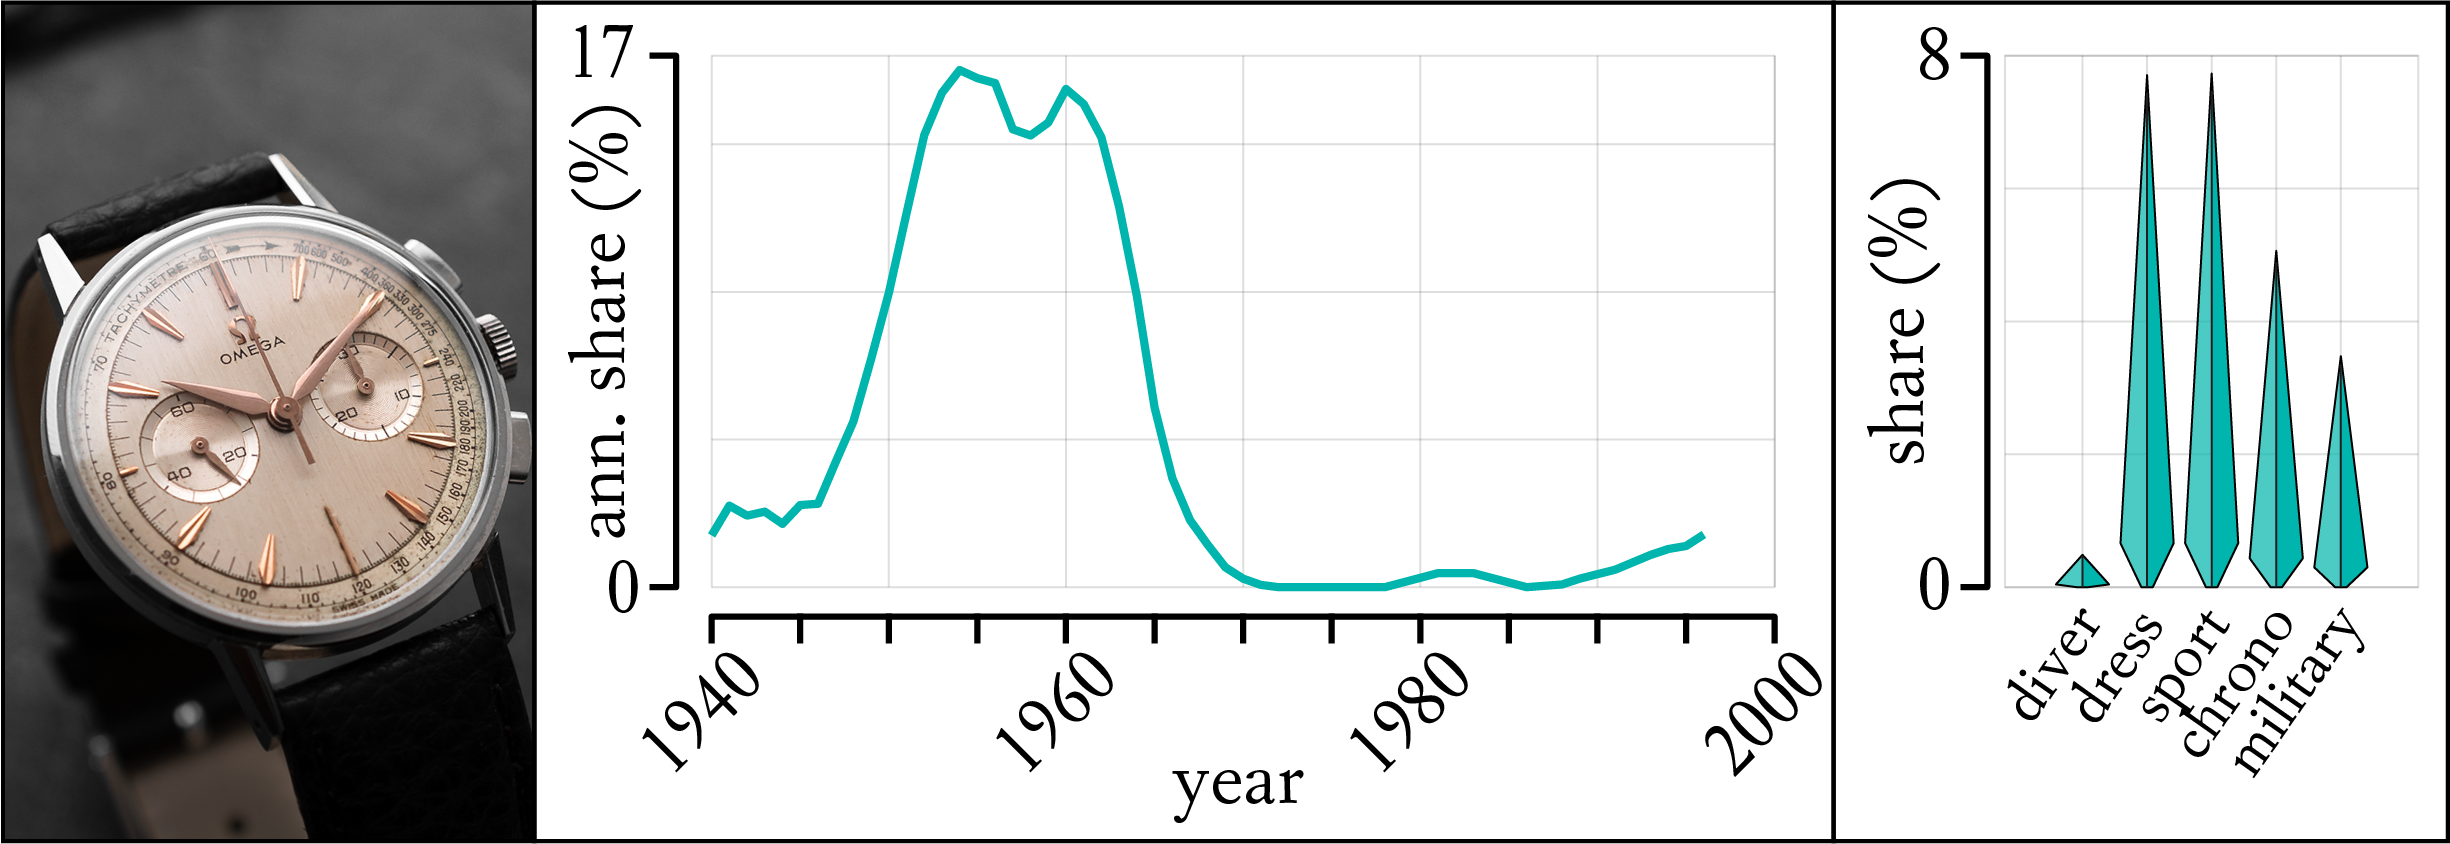 Distribution of Watch Alpha Hands and Omega 321 Chronograph